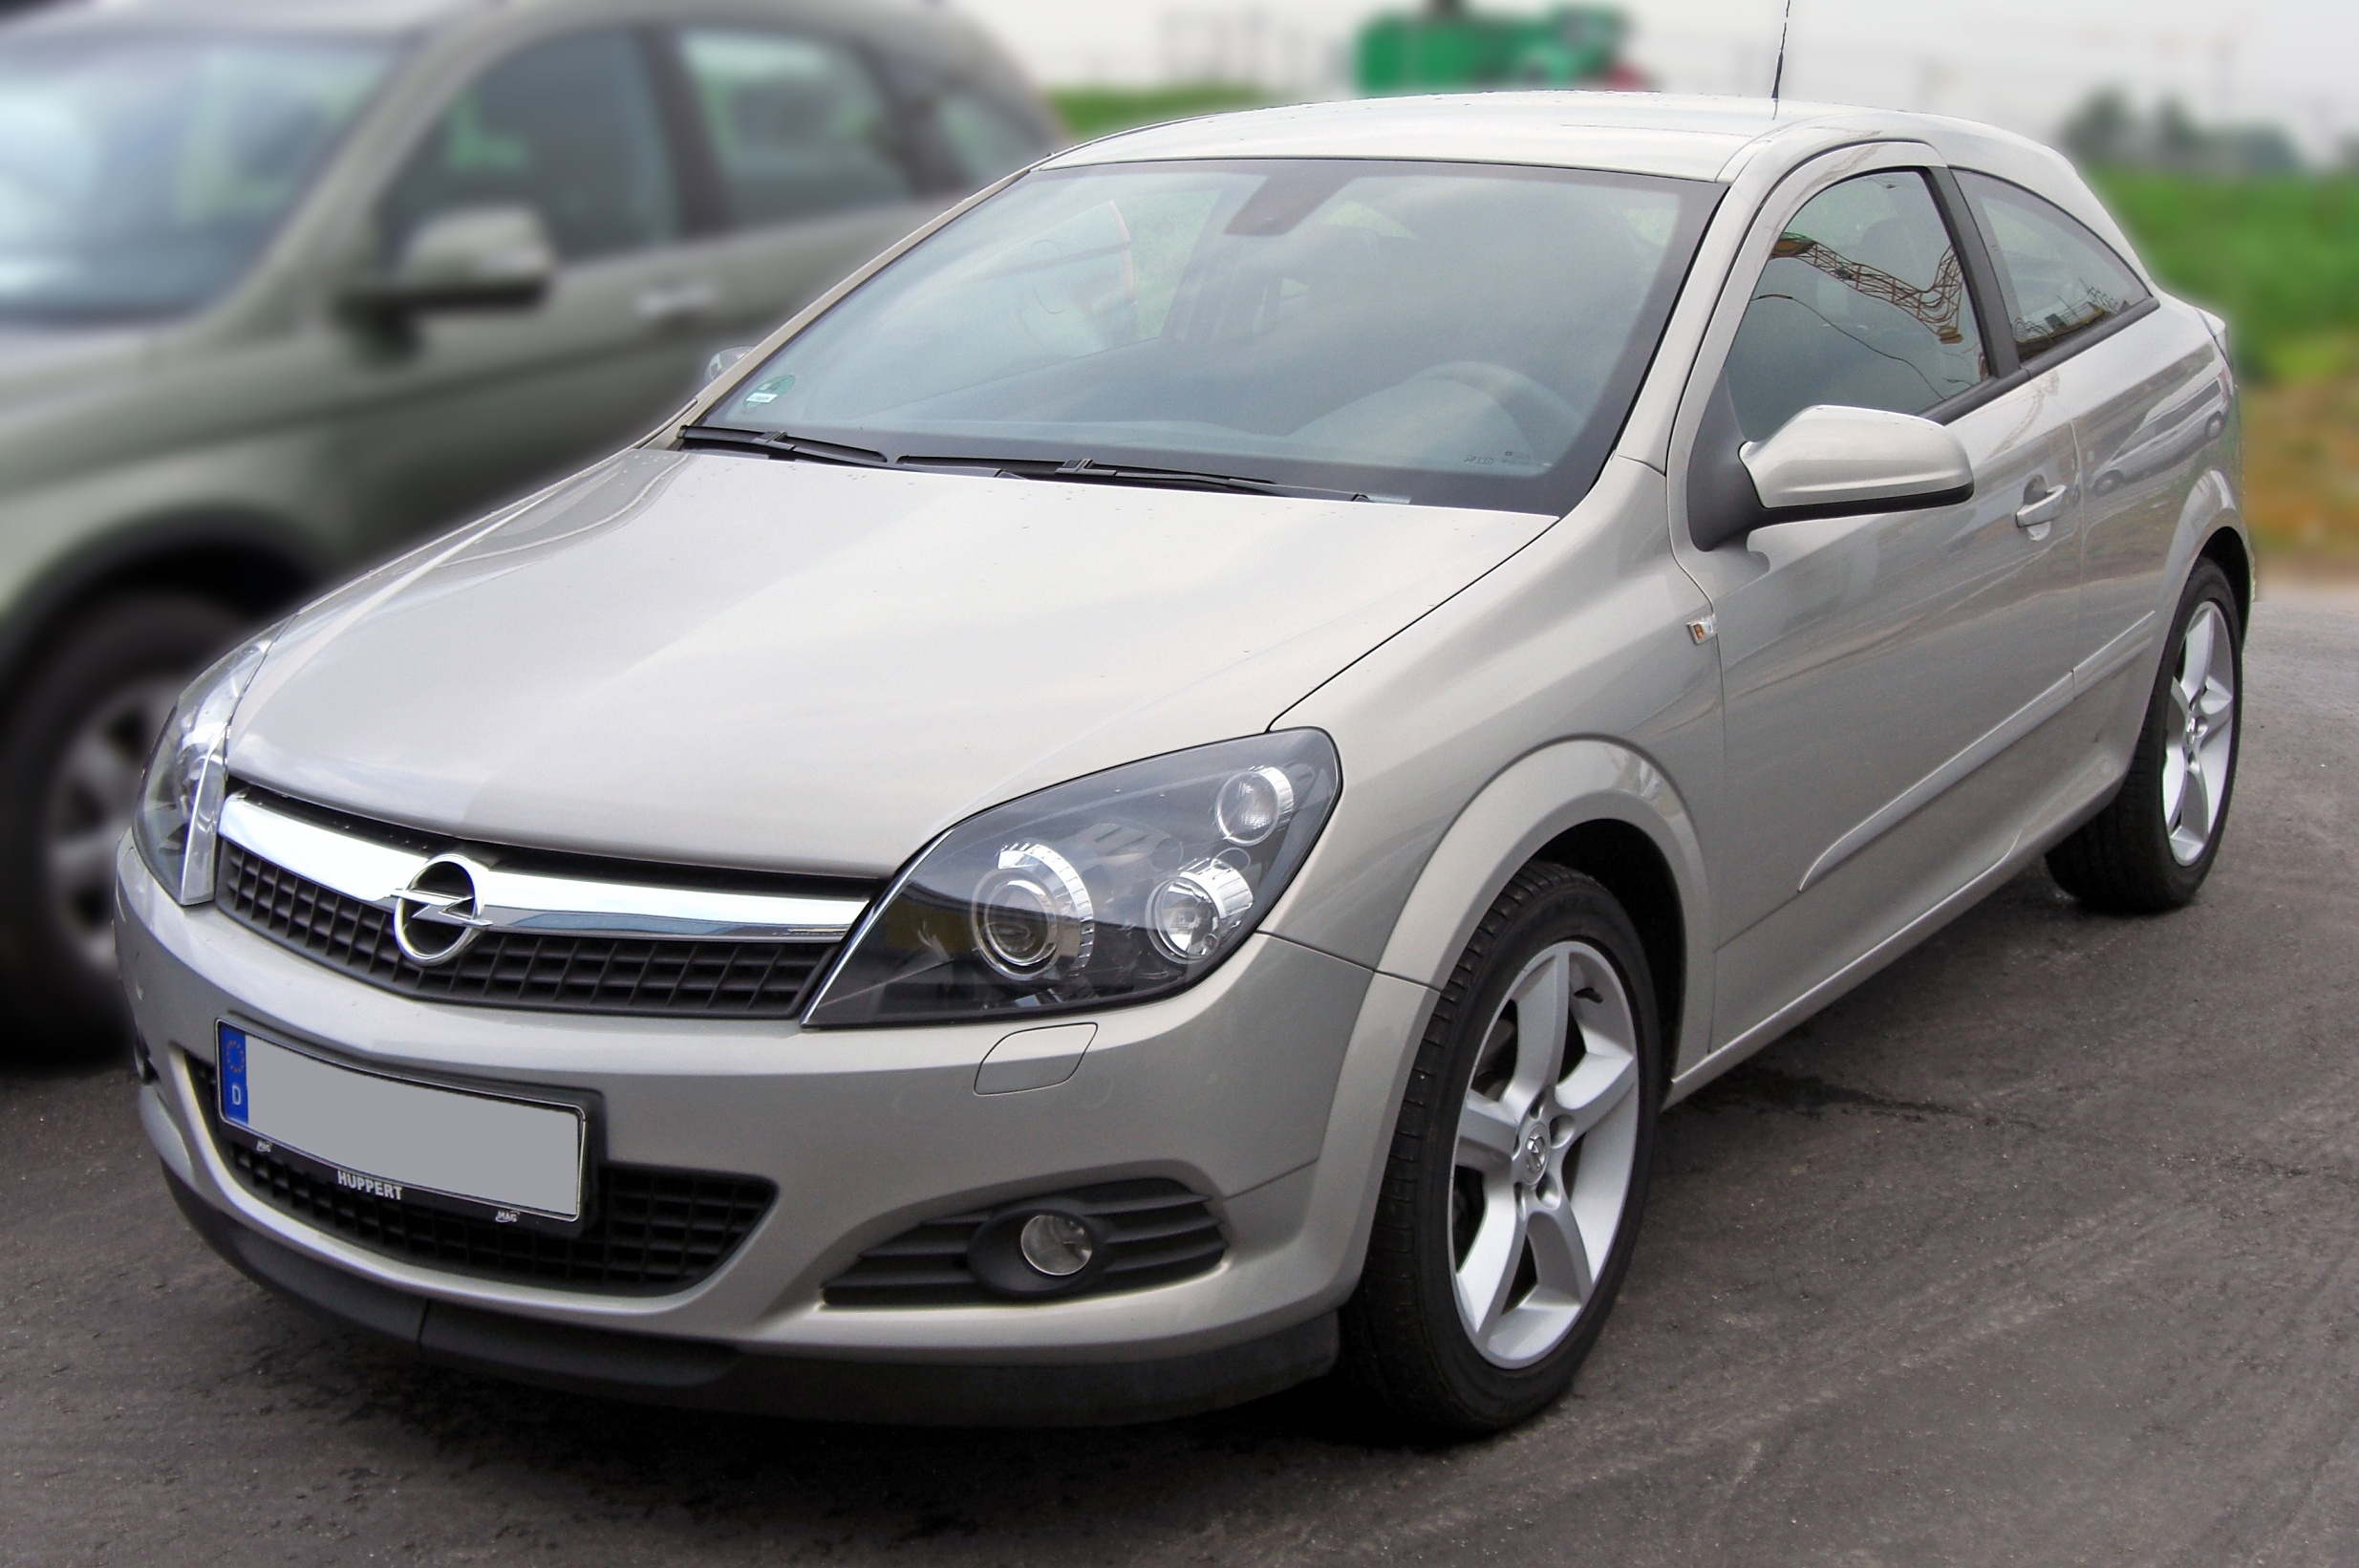 2009 opel astra h gtc pictures information and specs auto. Black Bedroom Furniture Sets. Home Design Ideas